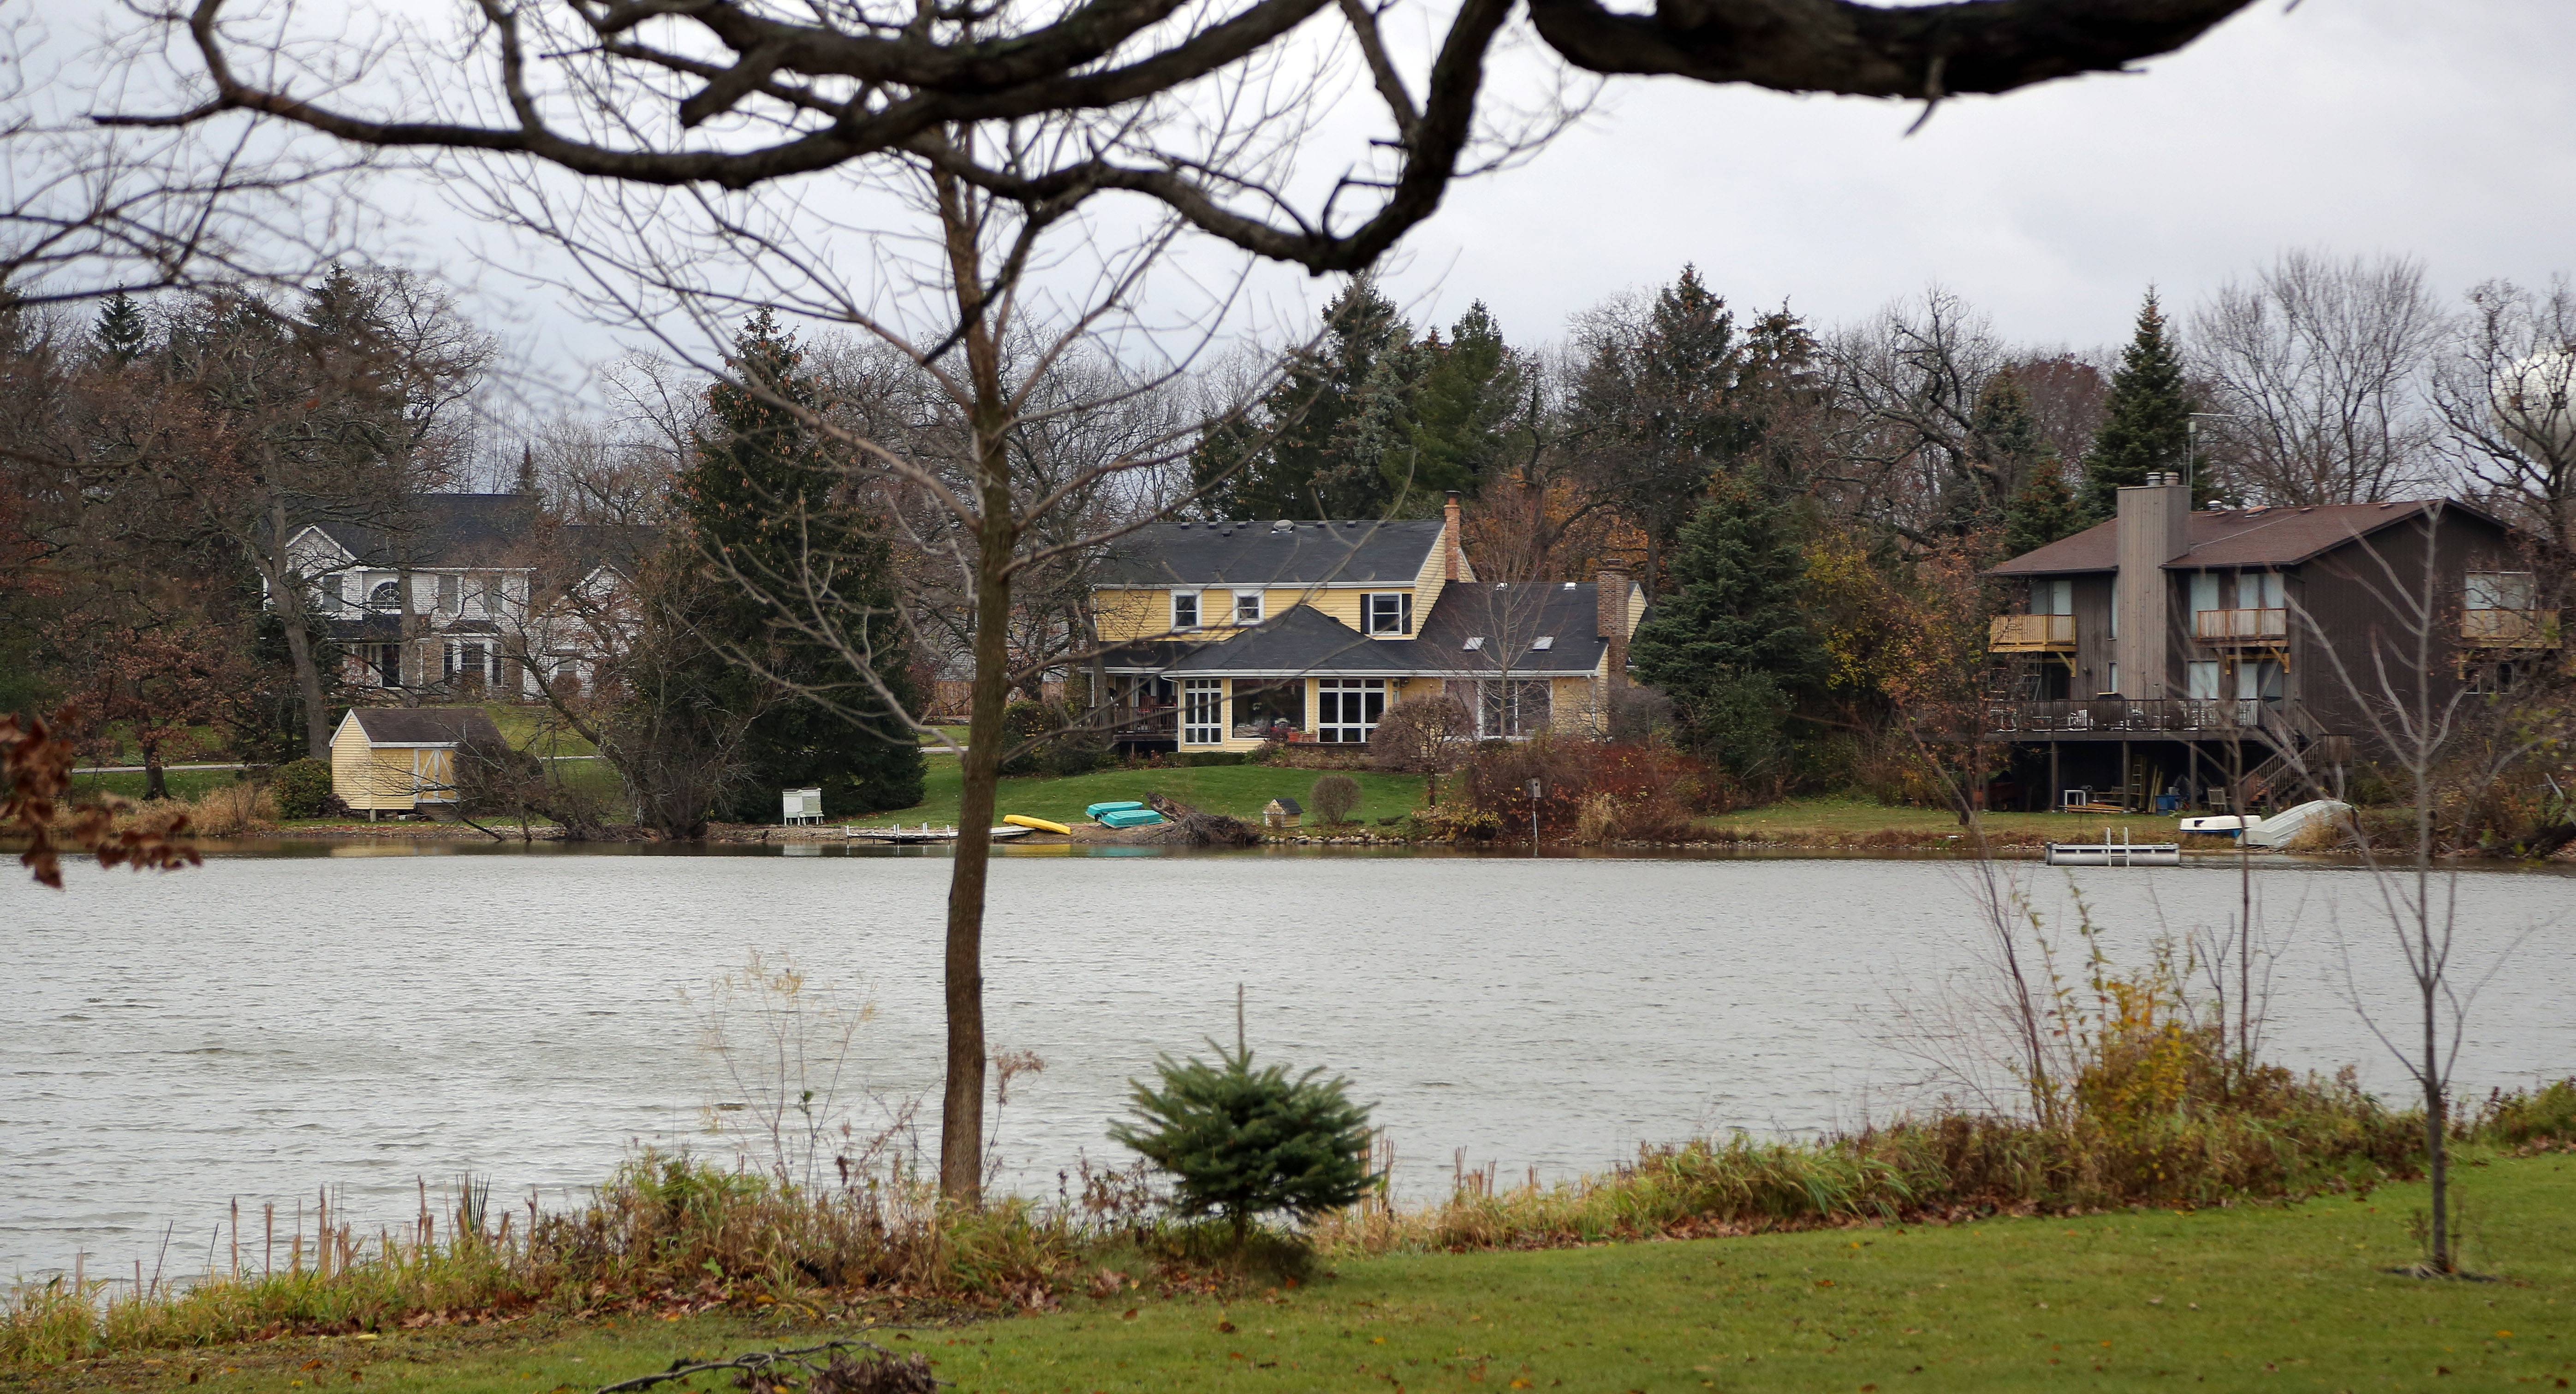 Many houses back up to a private lake in Lakeview Woodlands, a neighborhood in unincorporated Wauconda.